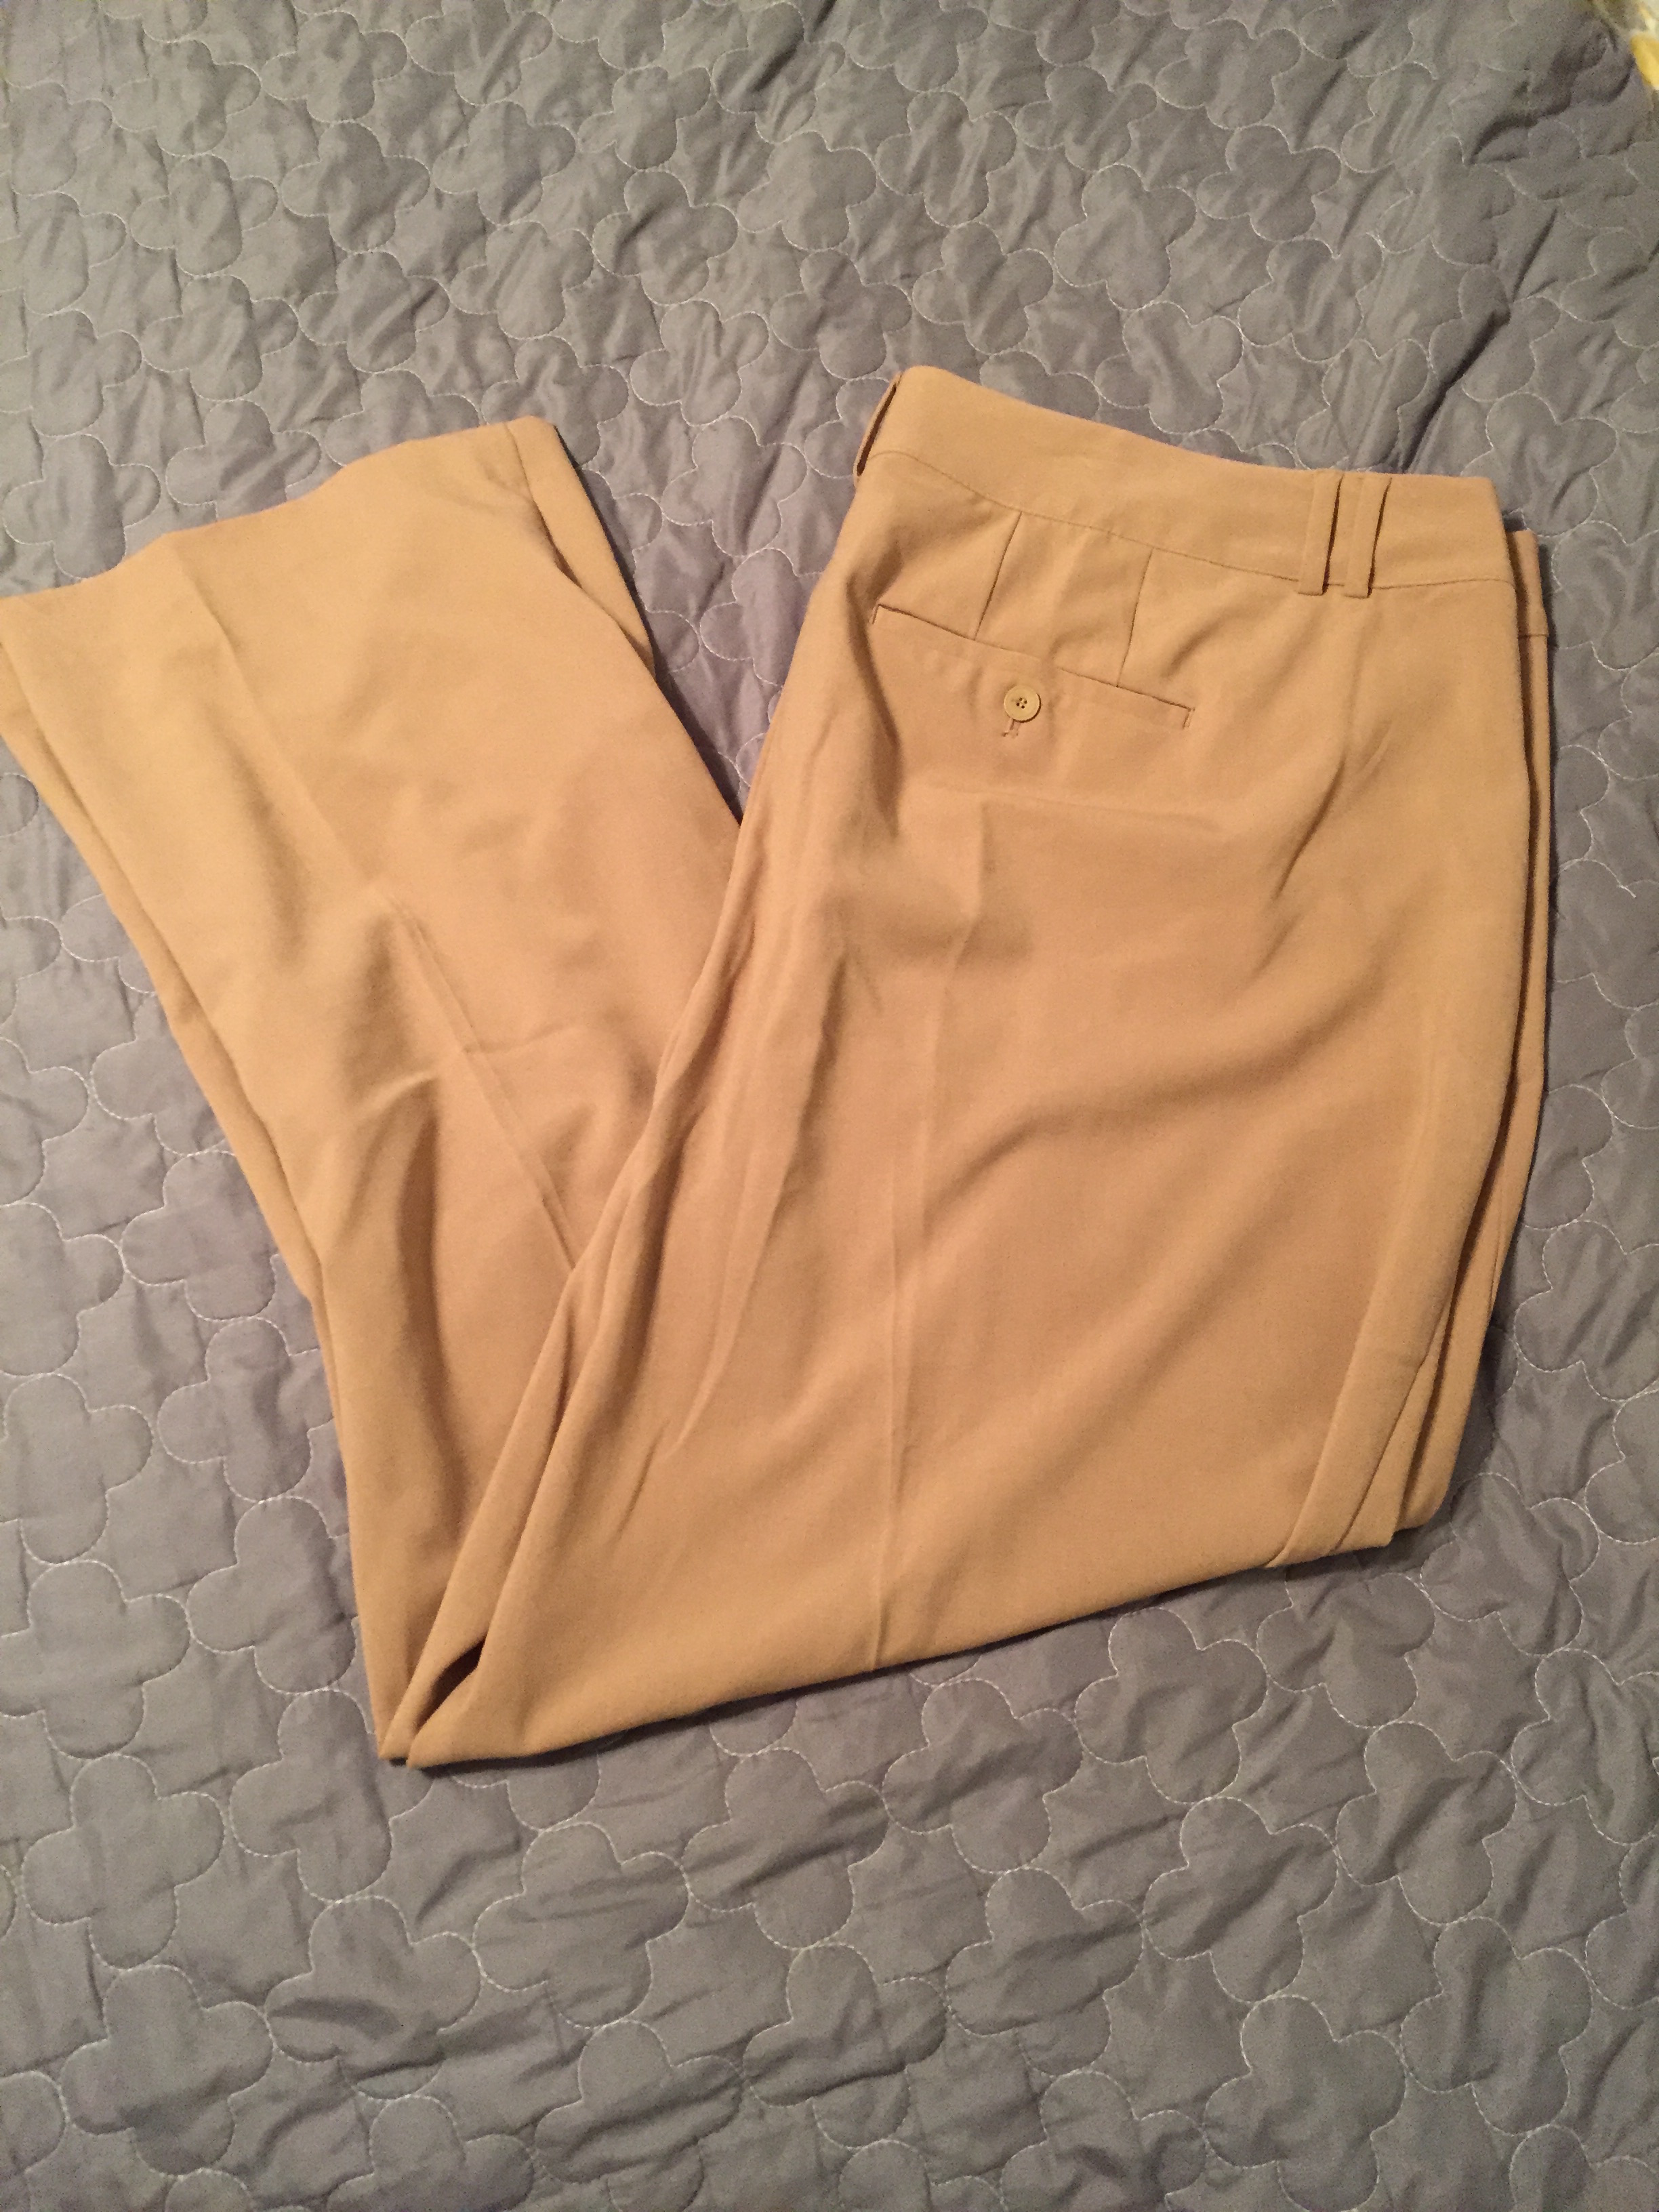 khaki dress pants.jpg